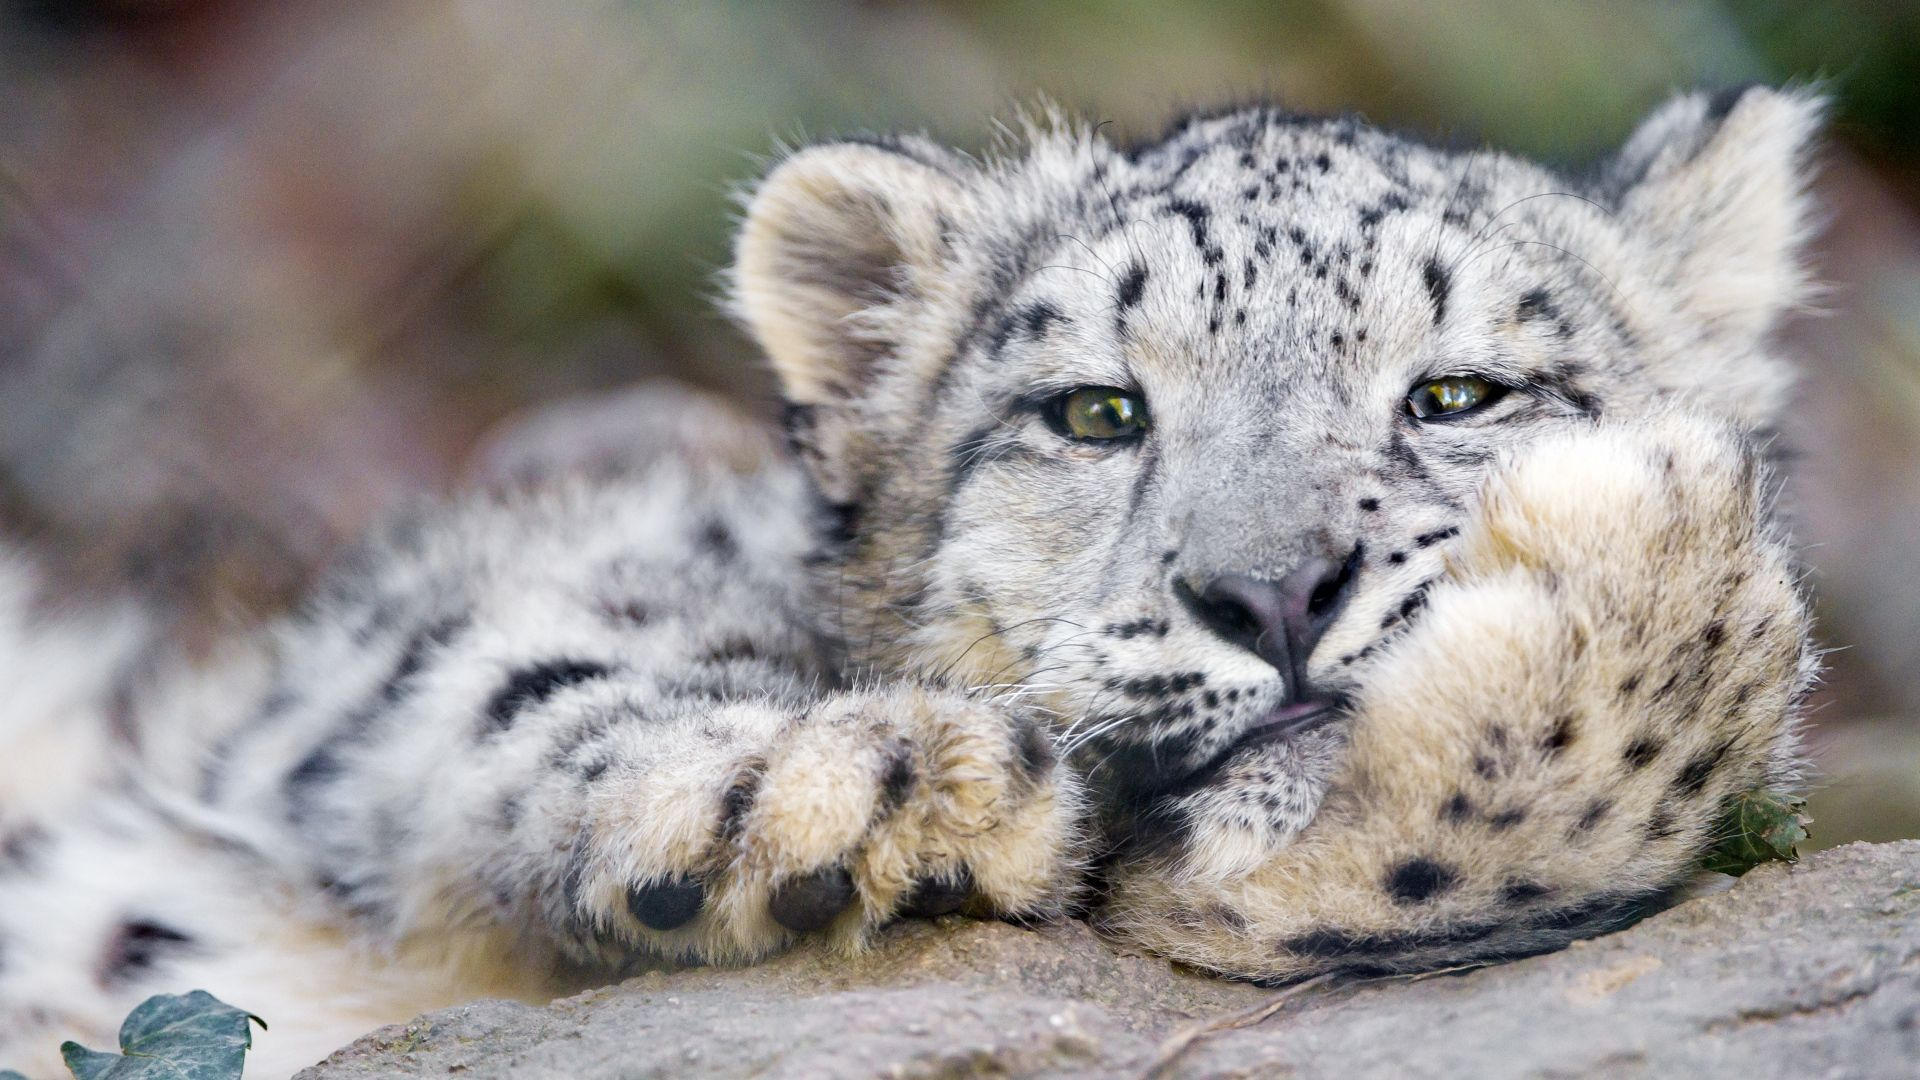 Snow Leopard Wallpapers Images Animal Wallpaper Petsprin